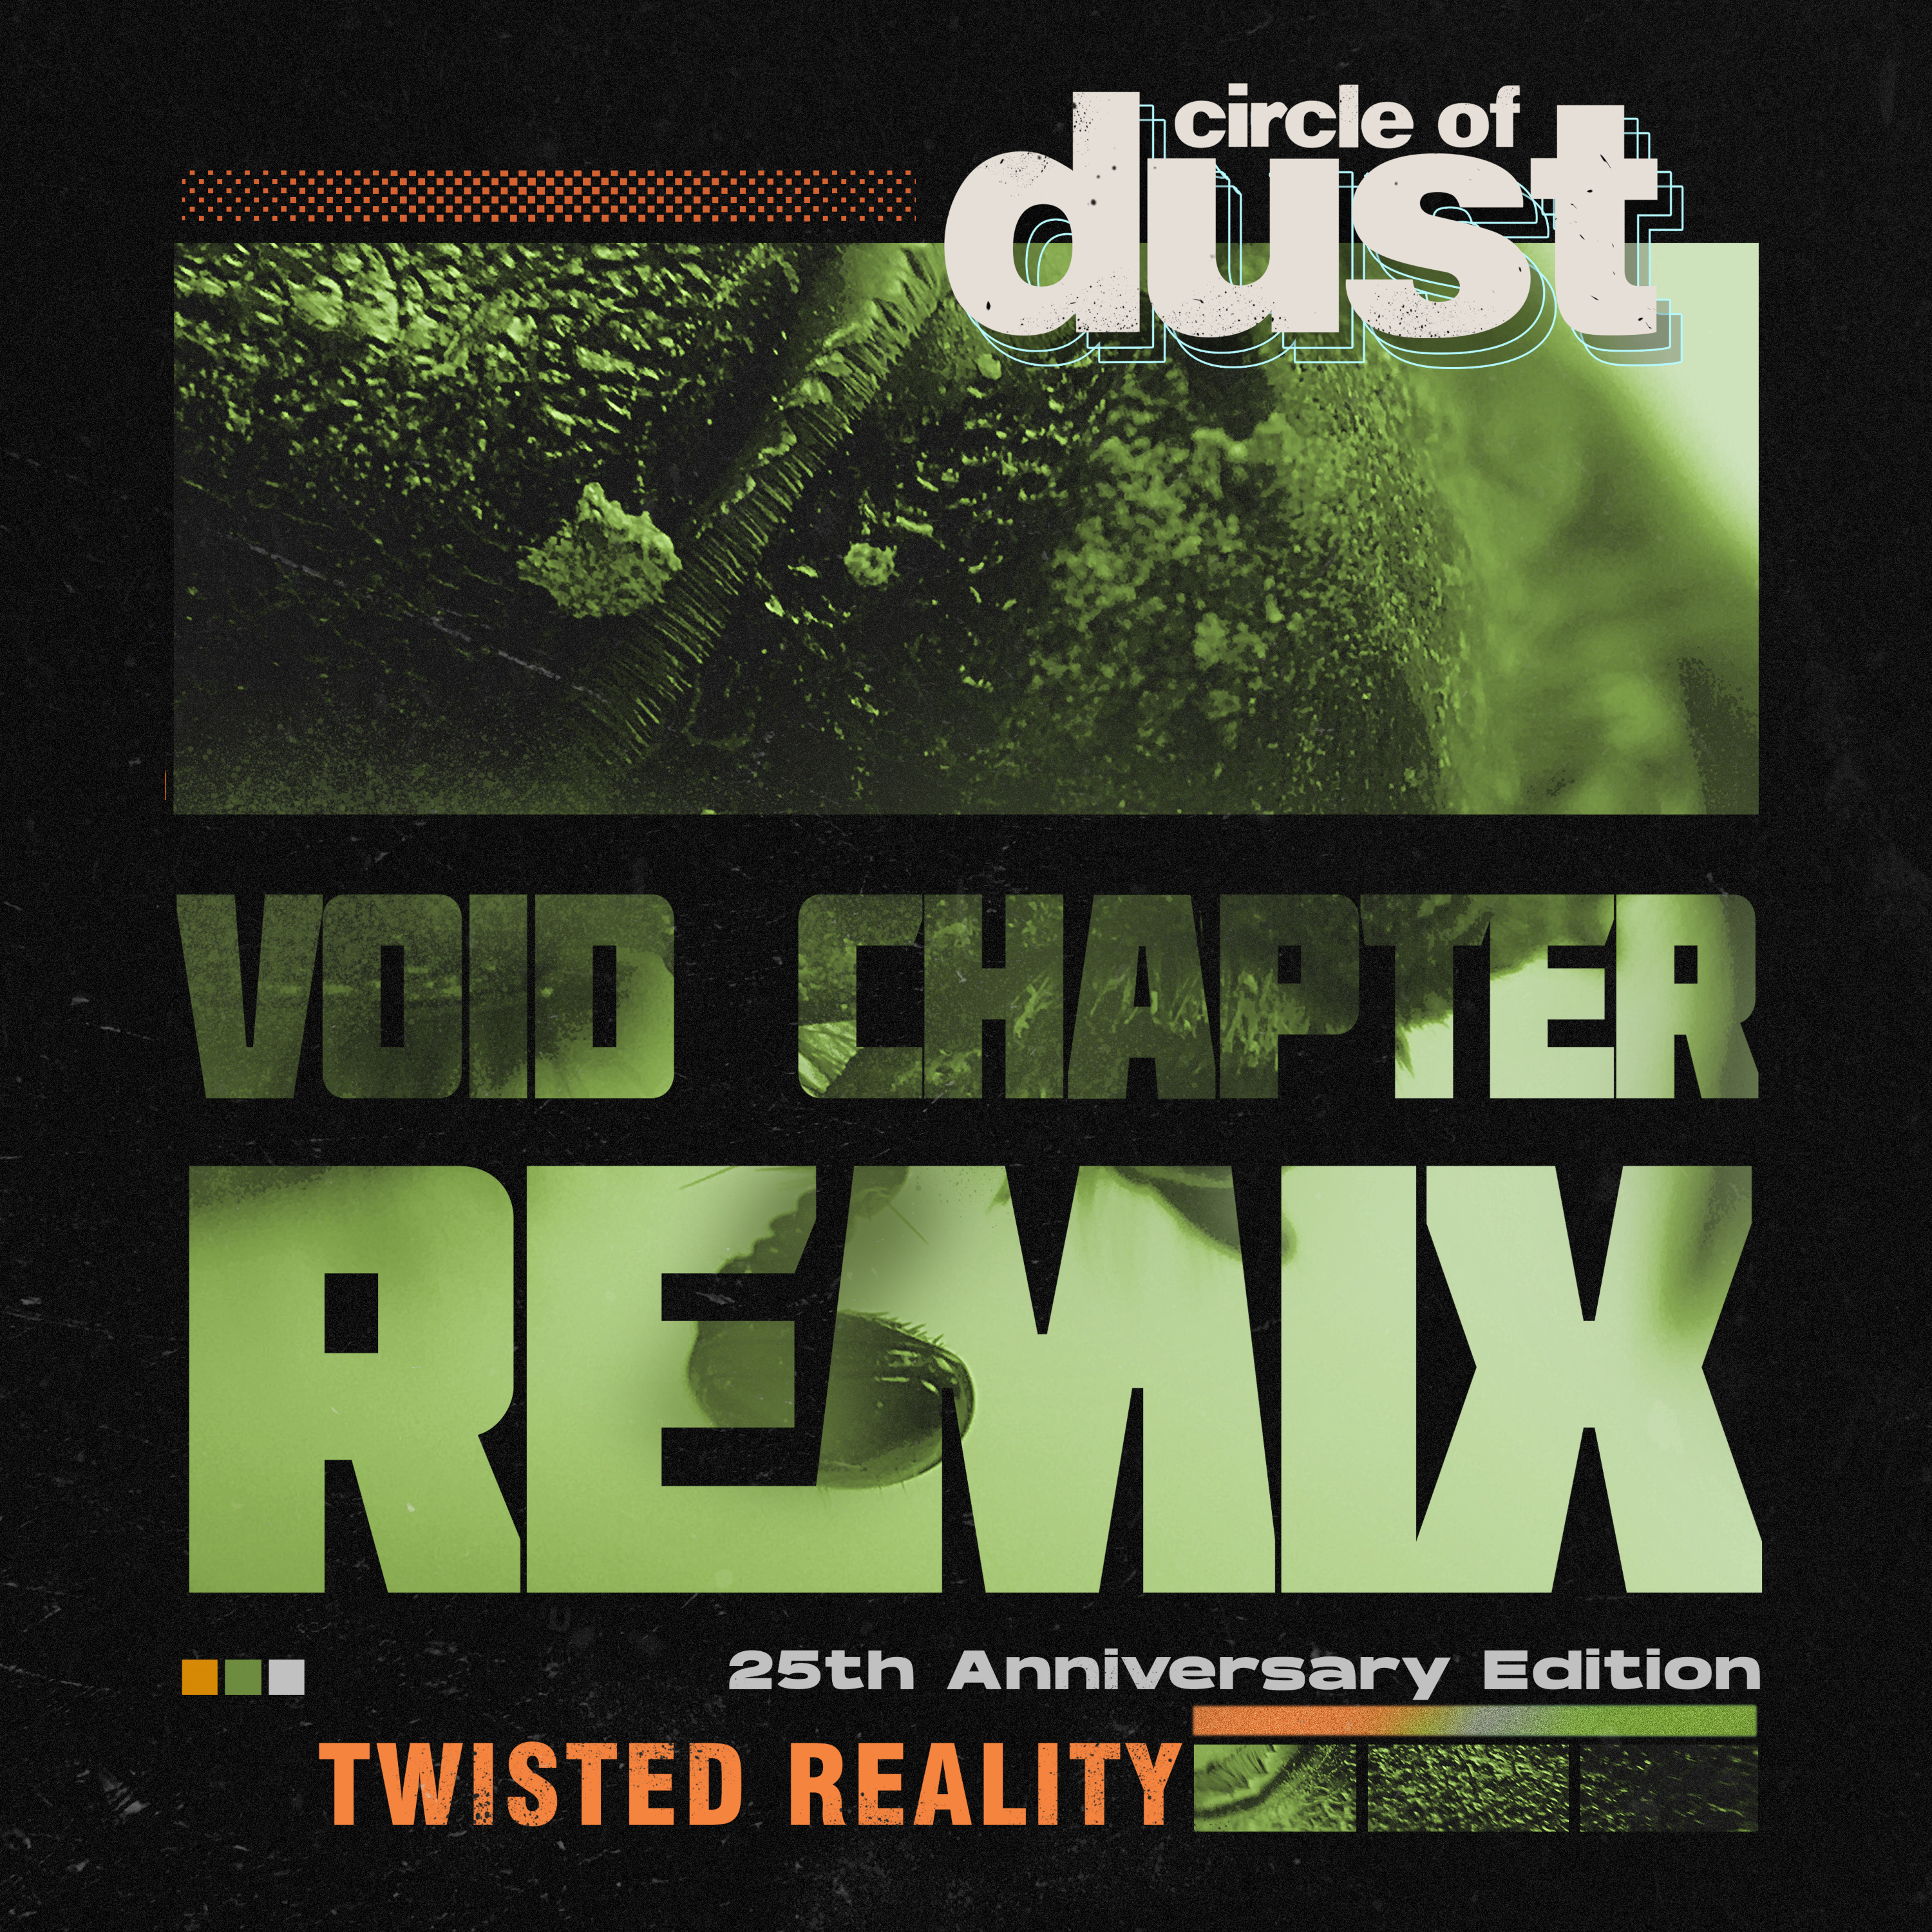 Circle of Dust - Twisted Reality (Void Chapter Remix) [Single] Image